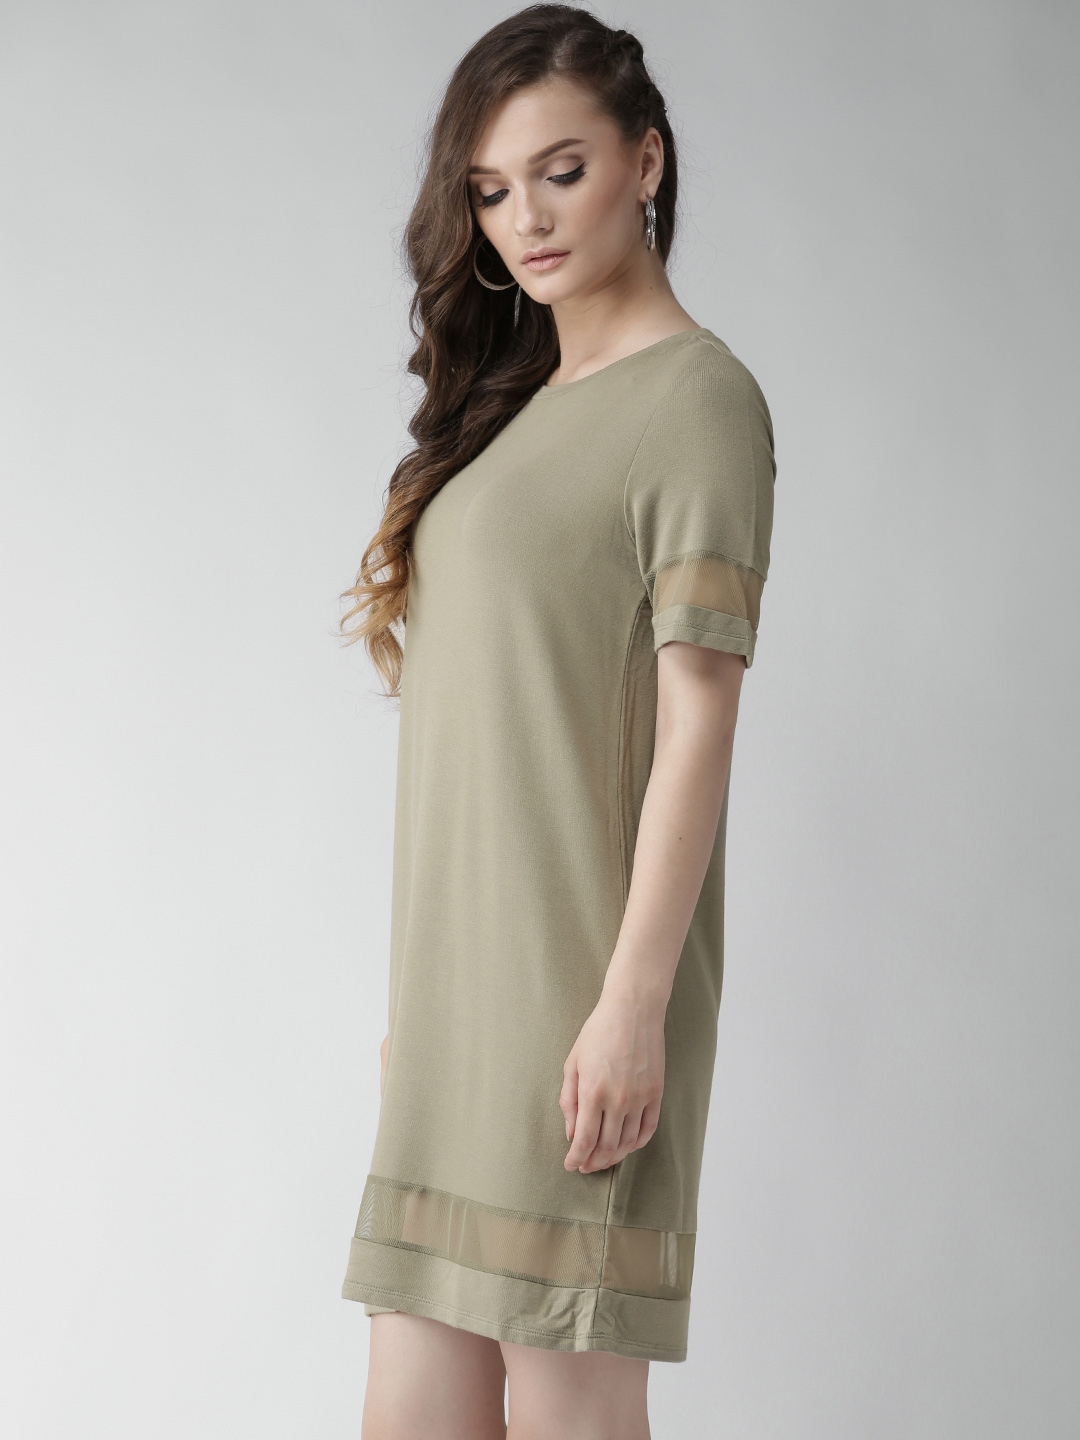 Buy FOREVER 21 Women Olive Green Solid T Shirt Dress - Dresses for ... de9bbf8f99